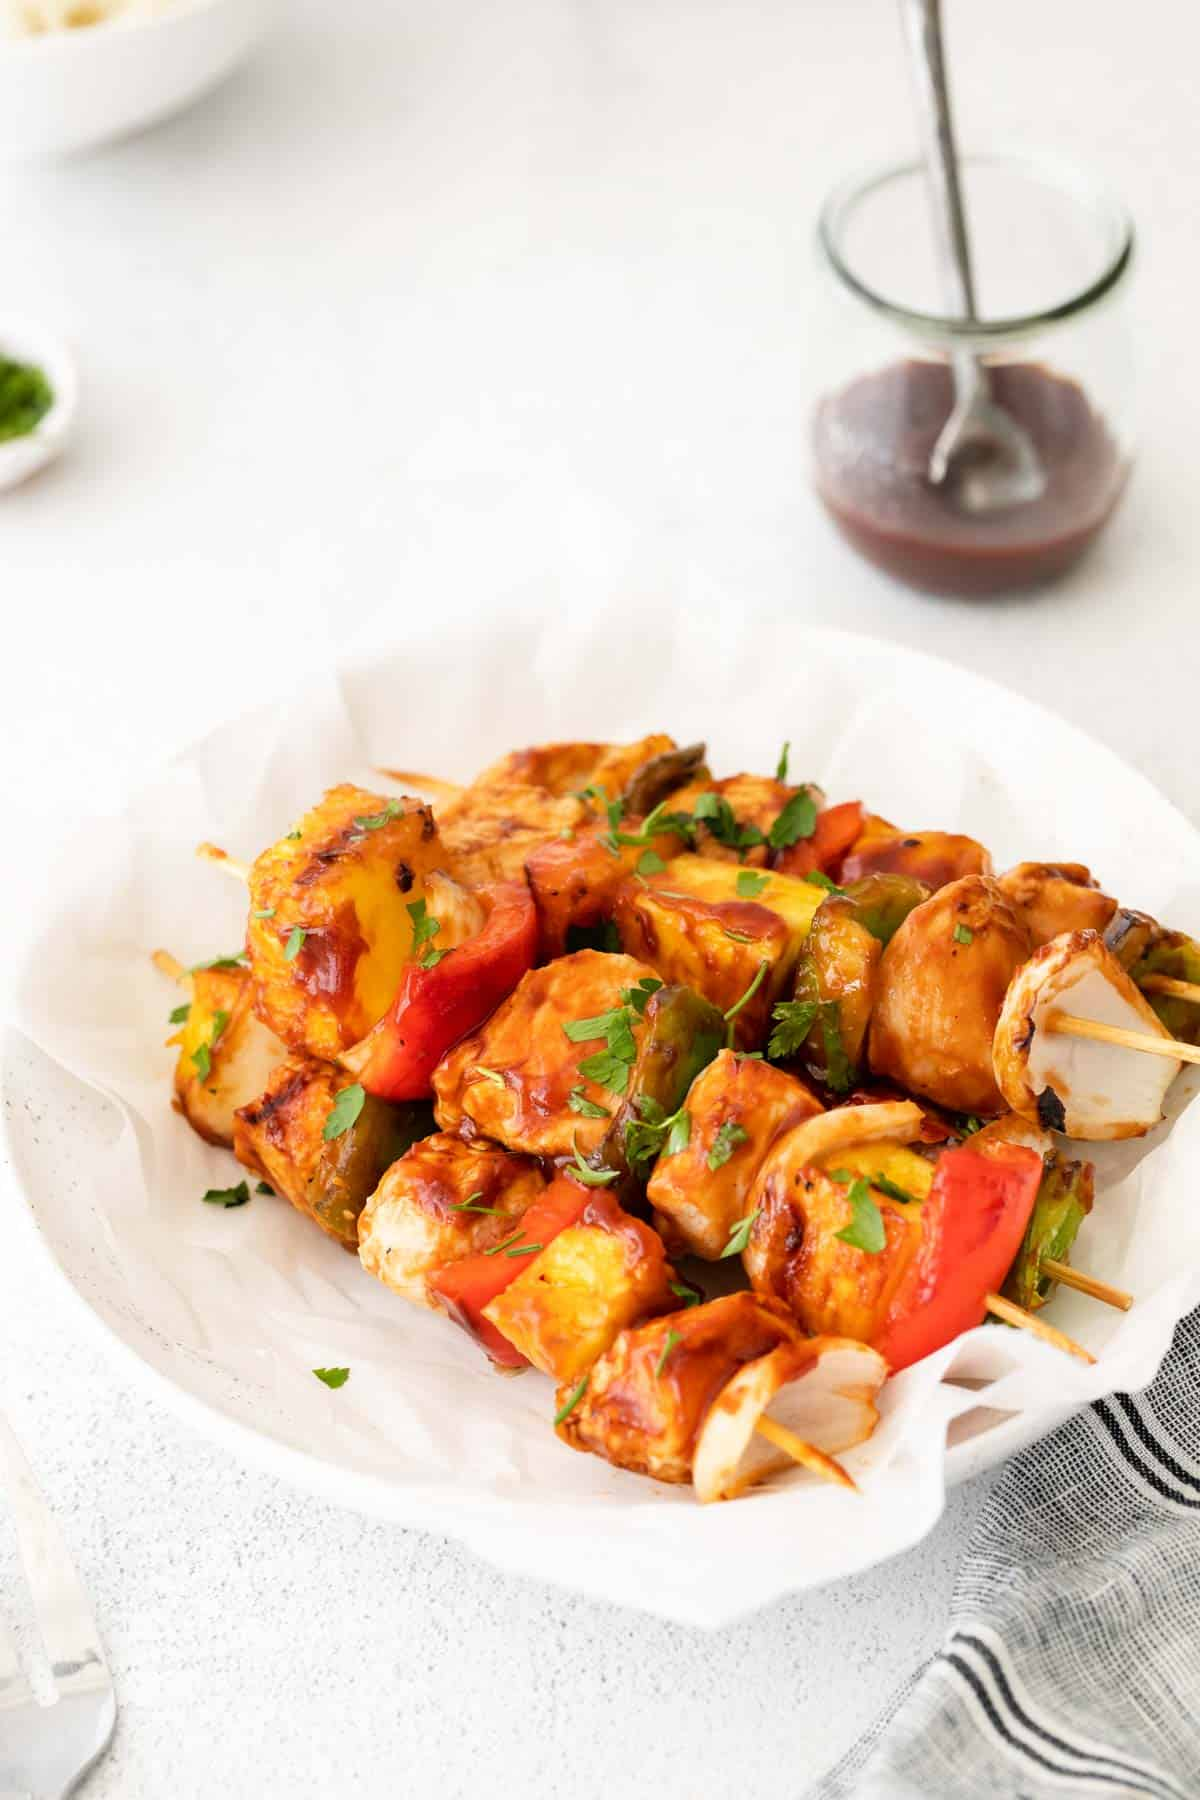 the cooked chicken kabobs served on a white plate